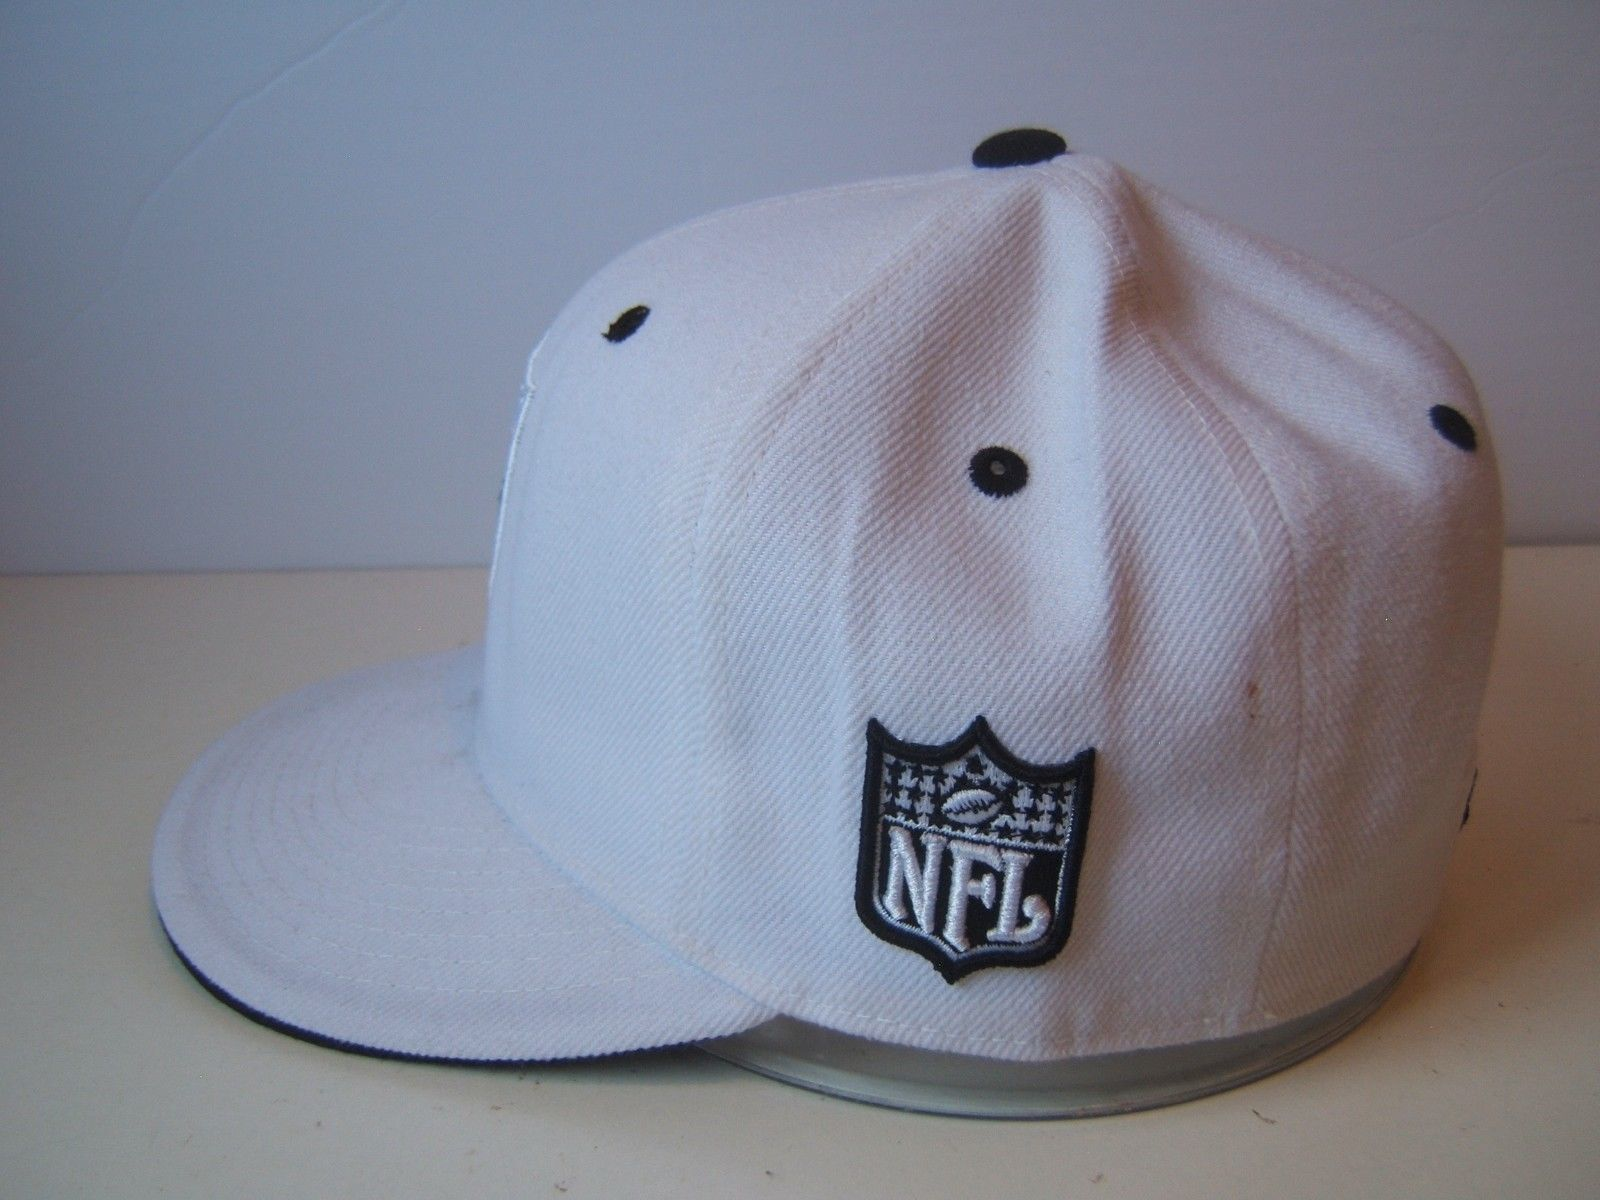 Raiders Patch Hat 7 1 4 Fitted Black White NFL Football Reebok Baseball Cap 6d274996b43f